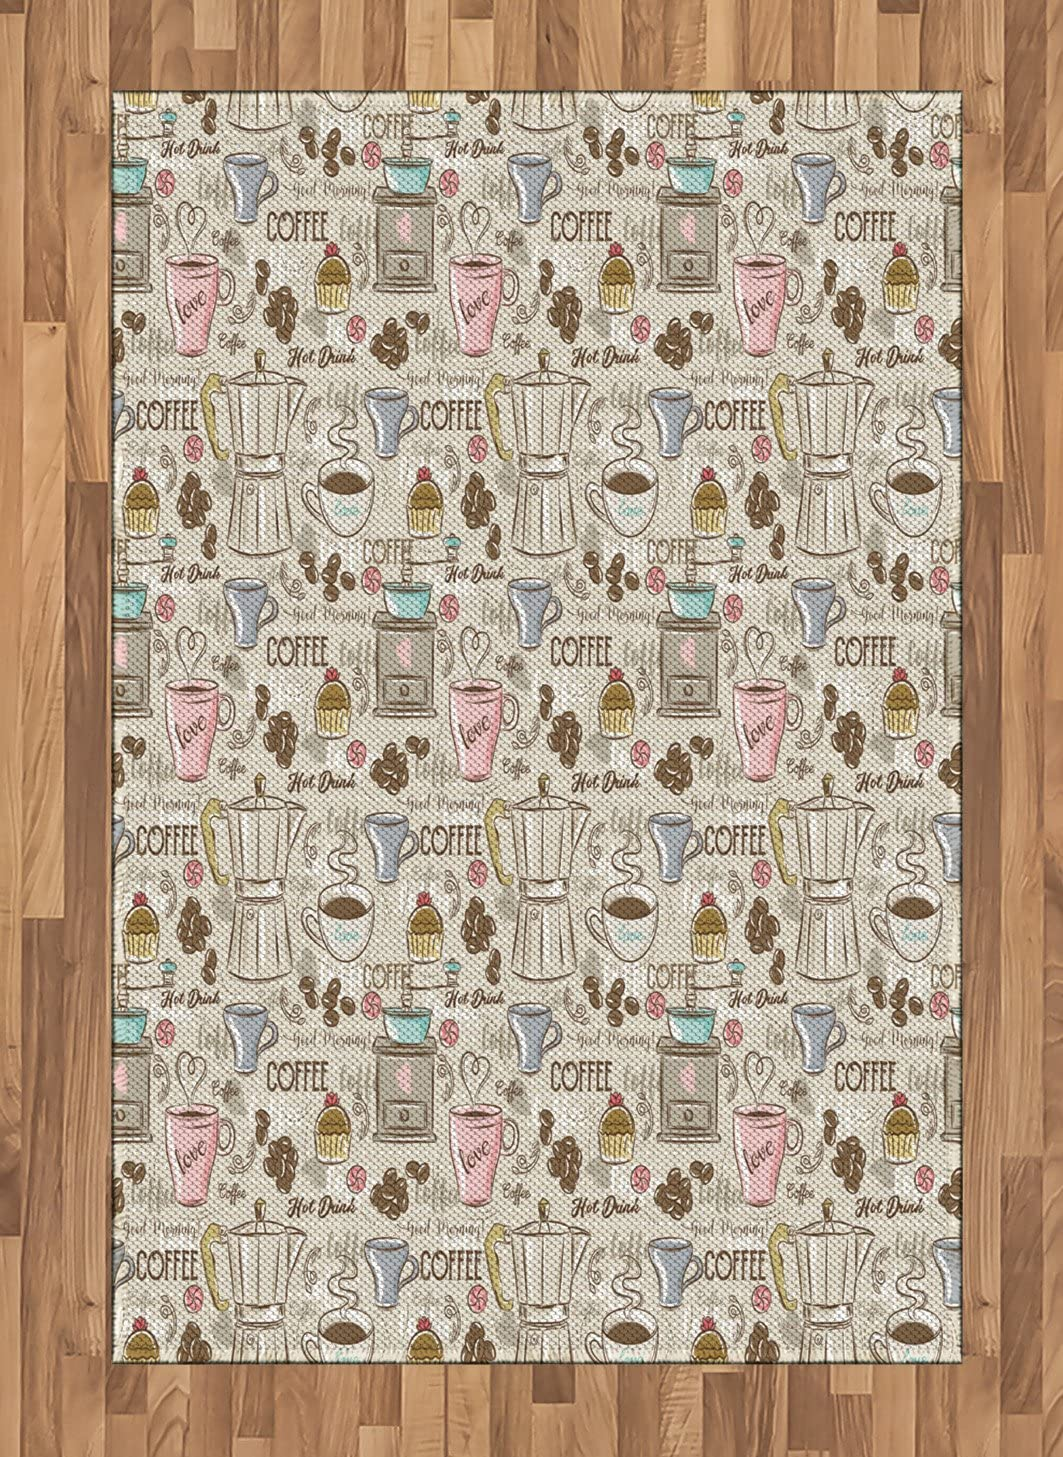 Ambesonne Modern Area Rug, Coffee Time Vintage Espresso Machine Cupcakes Beans Design, Flat Woven Accent Rug for Living Room Bedroom Dining Room, 4' X 5.7', Beige Pale Pink and Umber